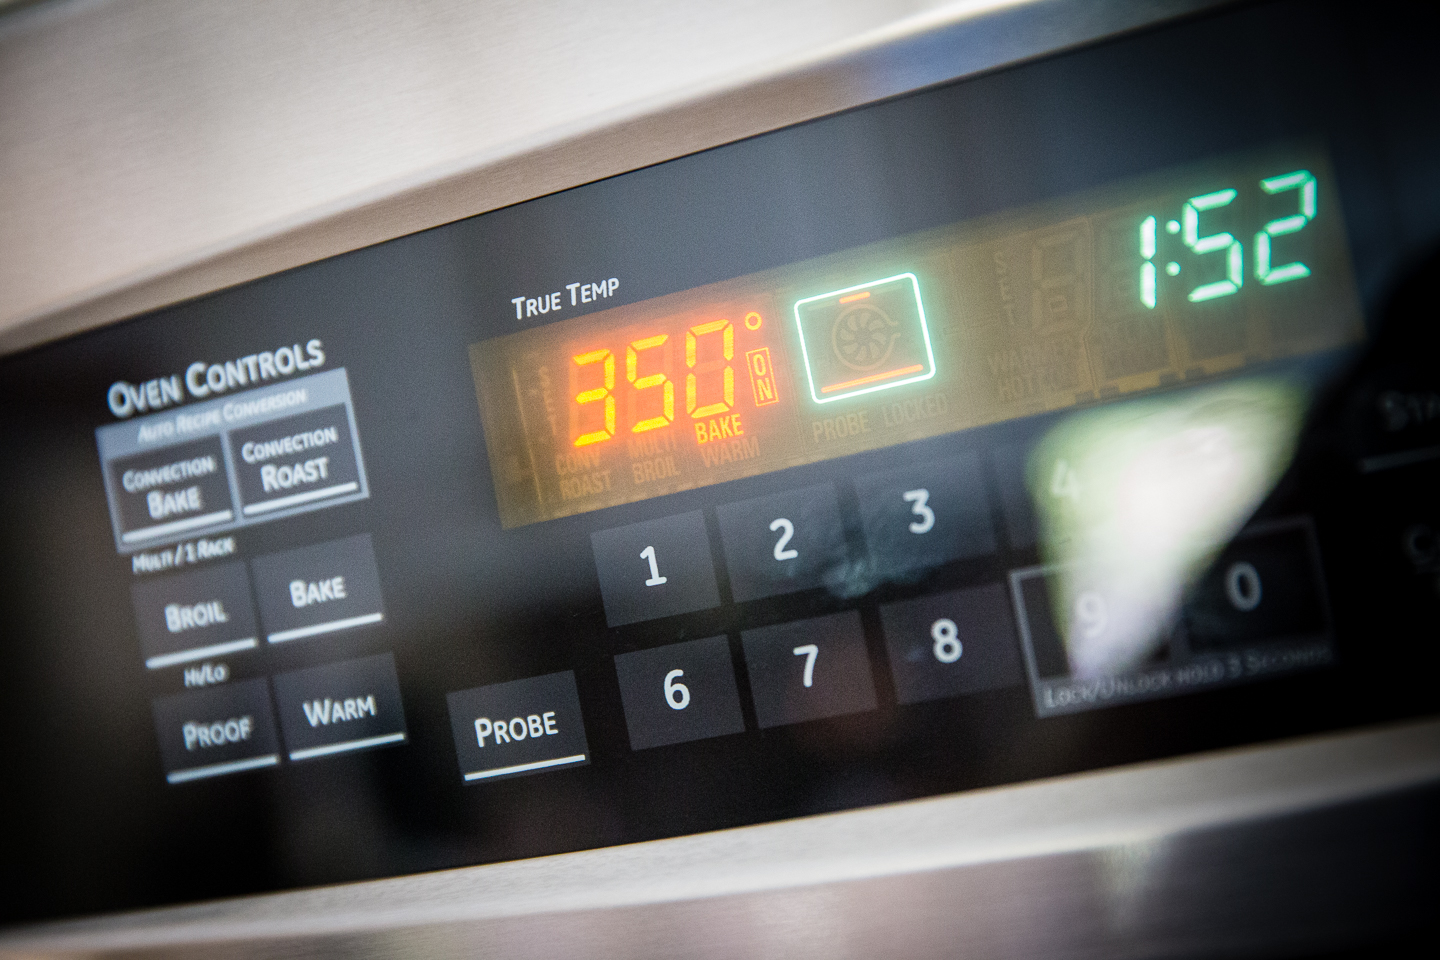 2-Preheat the Oven